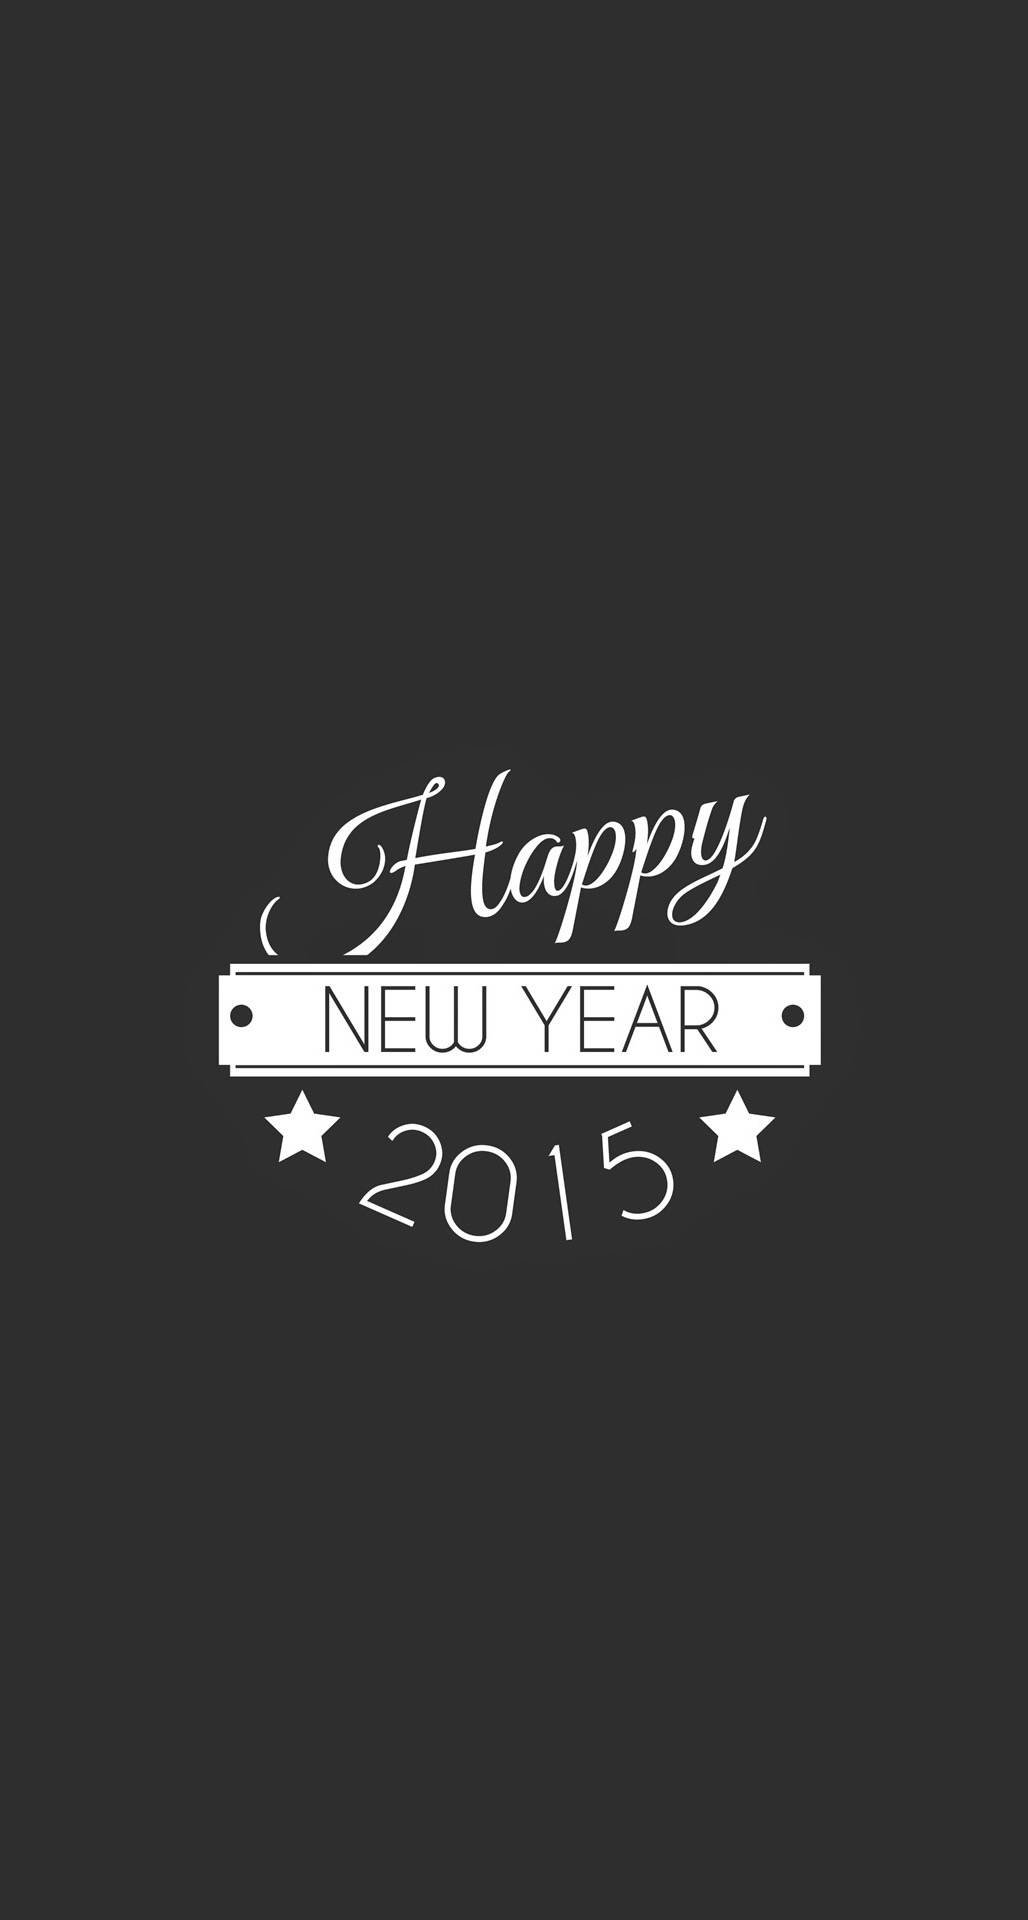 Happy New Year Typography iPhone 6 Plus HD Wallpaper iPod Wallpaper 1028x1920